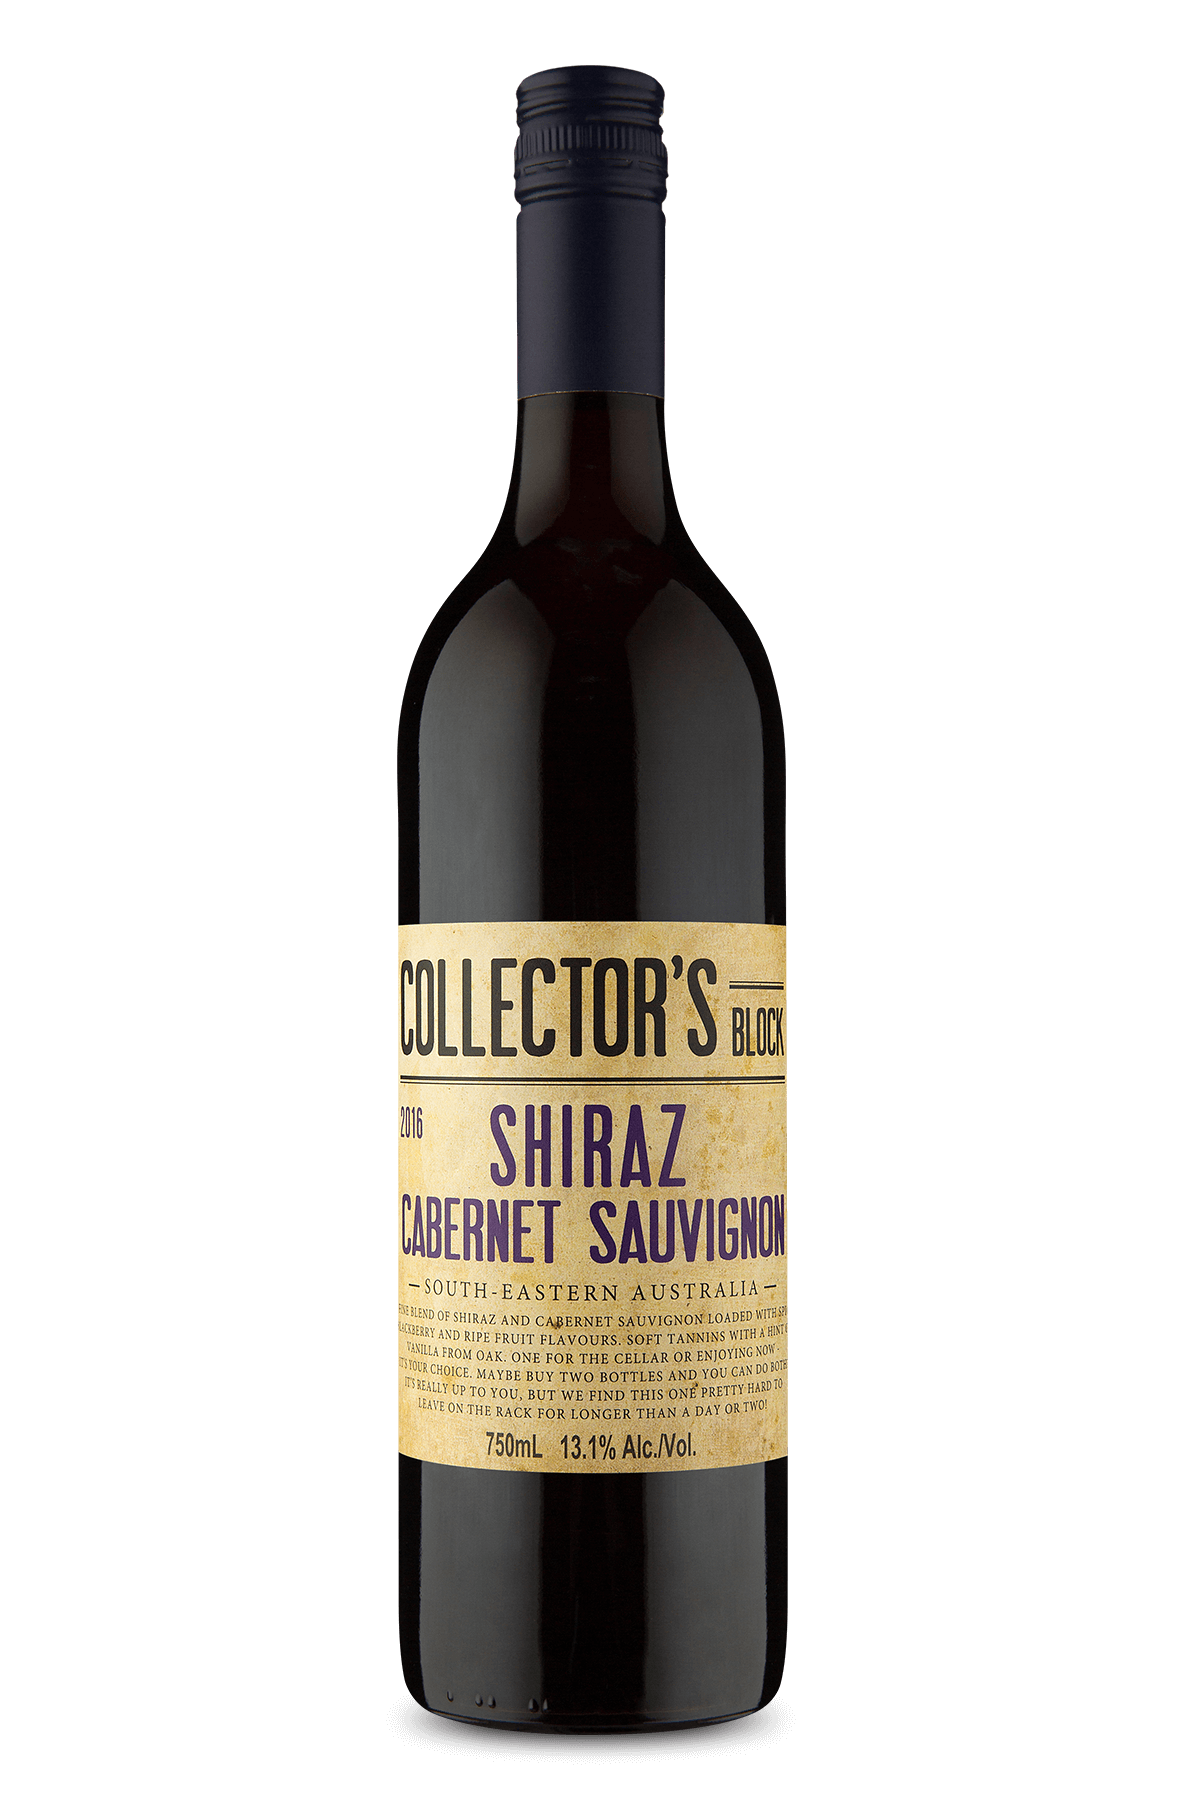 Collector's Block Shiraz Cabernet Sauvignon 2016